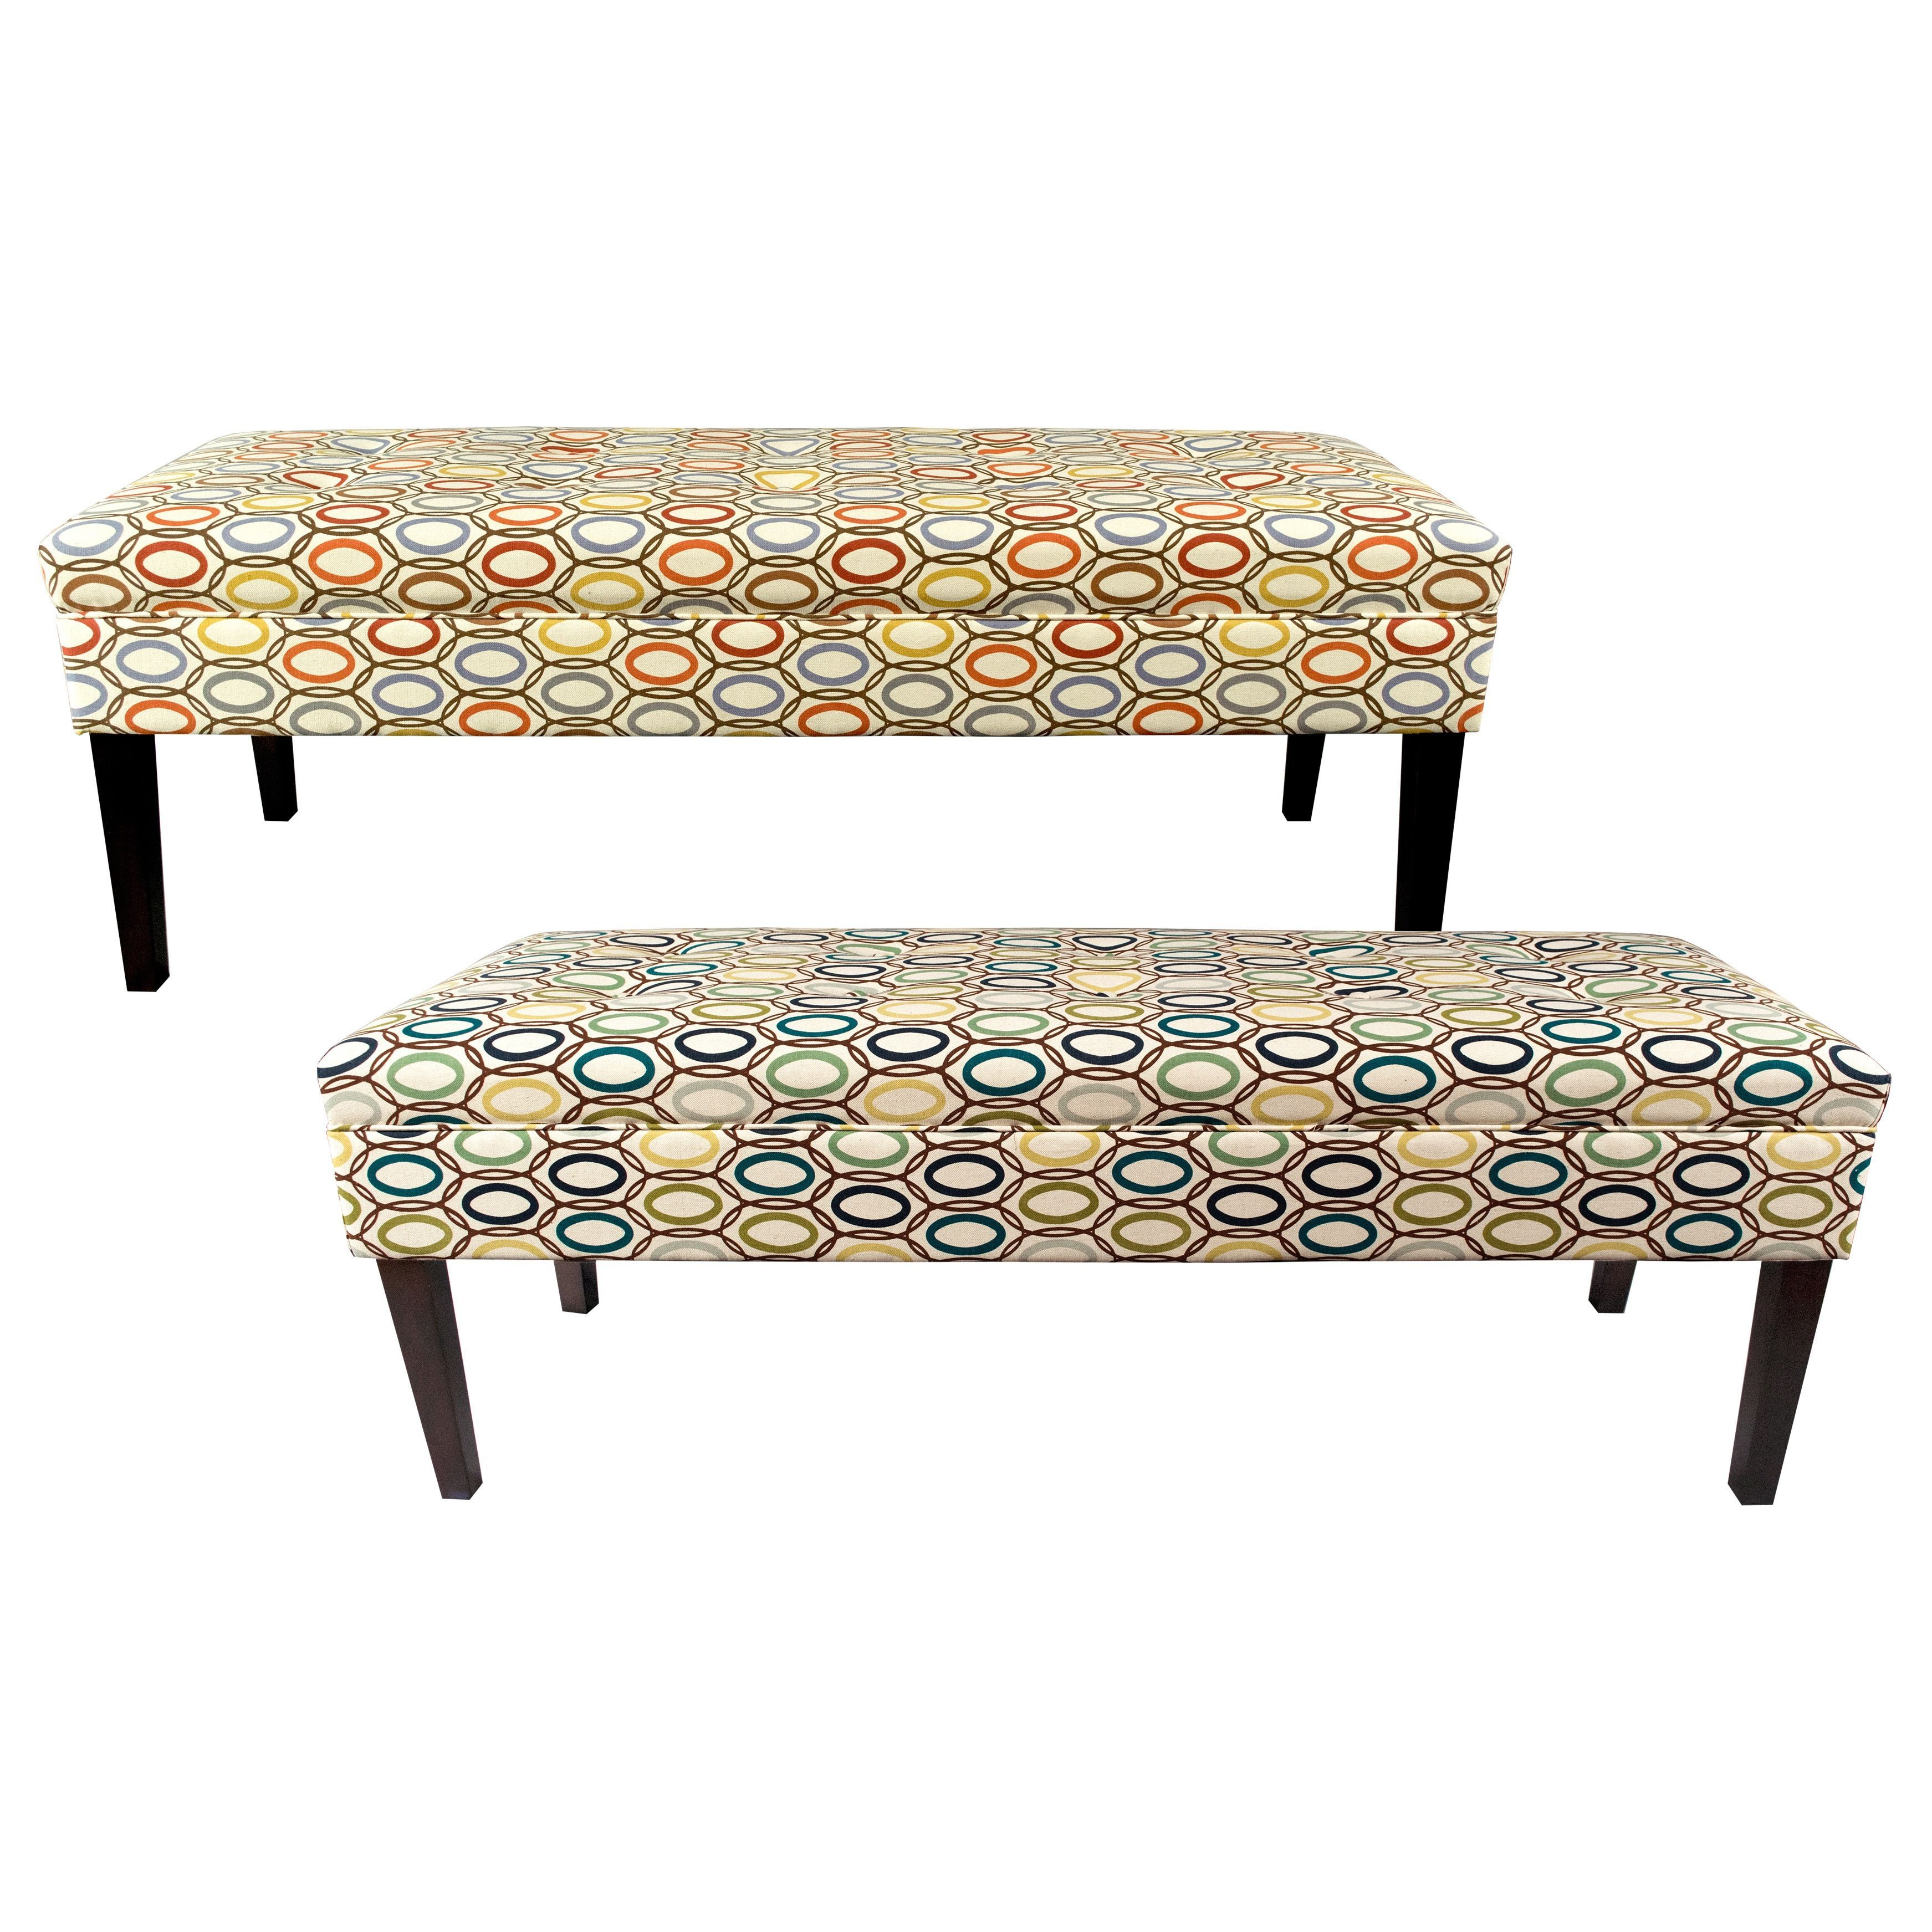 Bedroom Bench Home Goods : Free Shipping on orders over $45 at ...